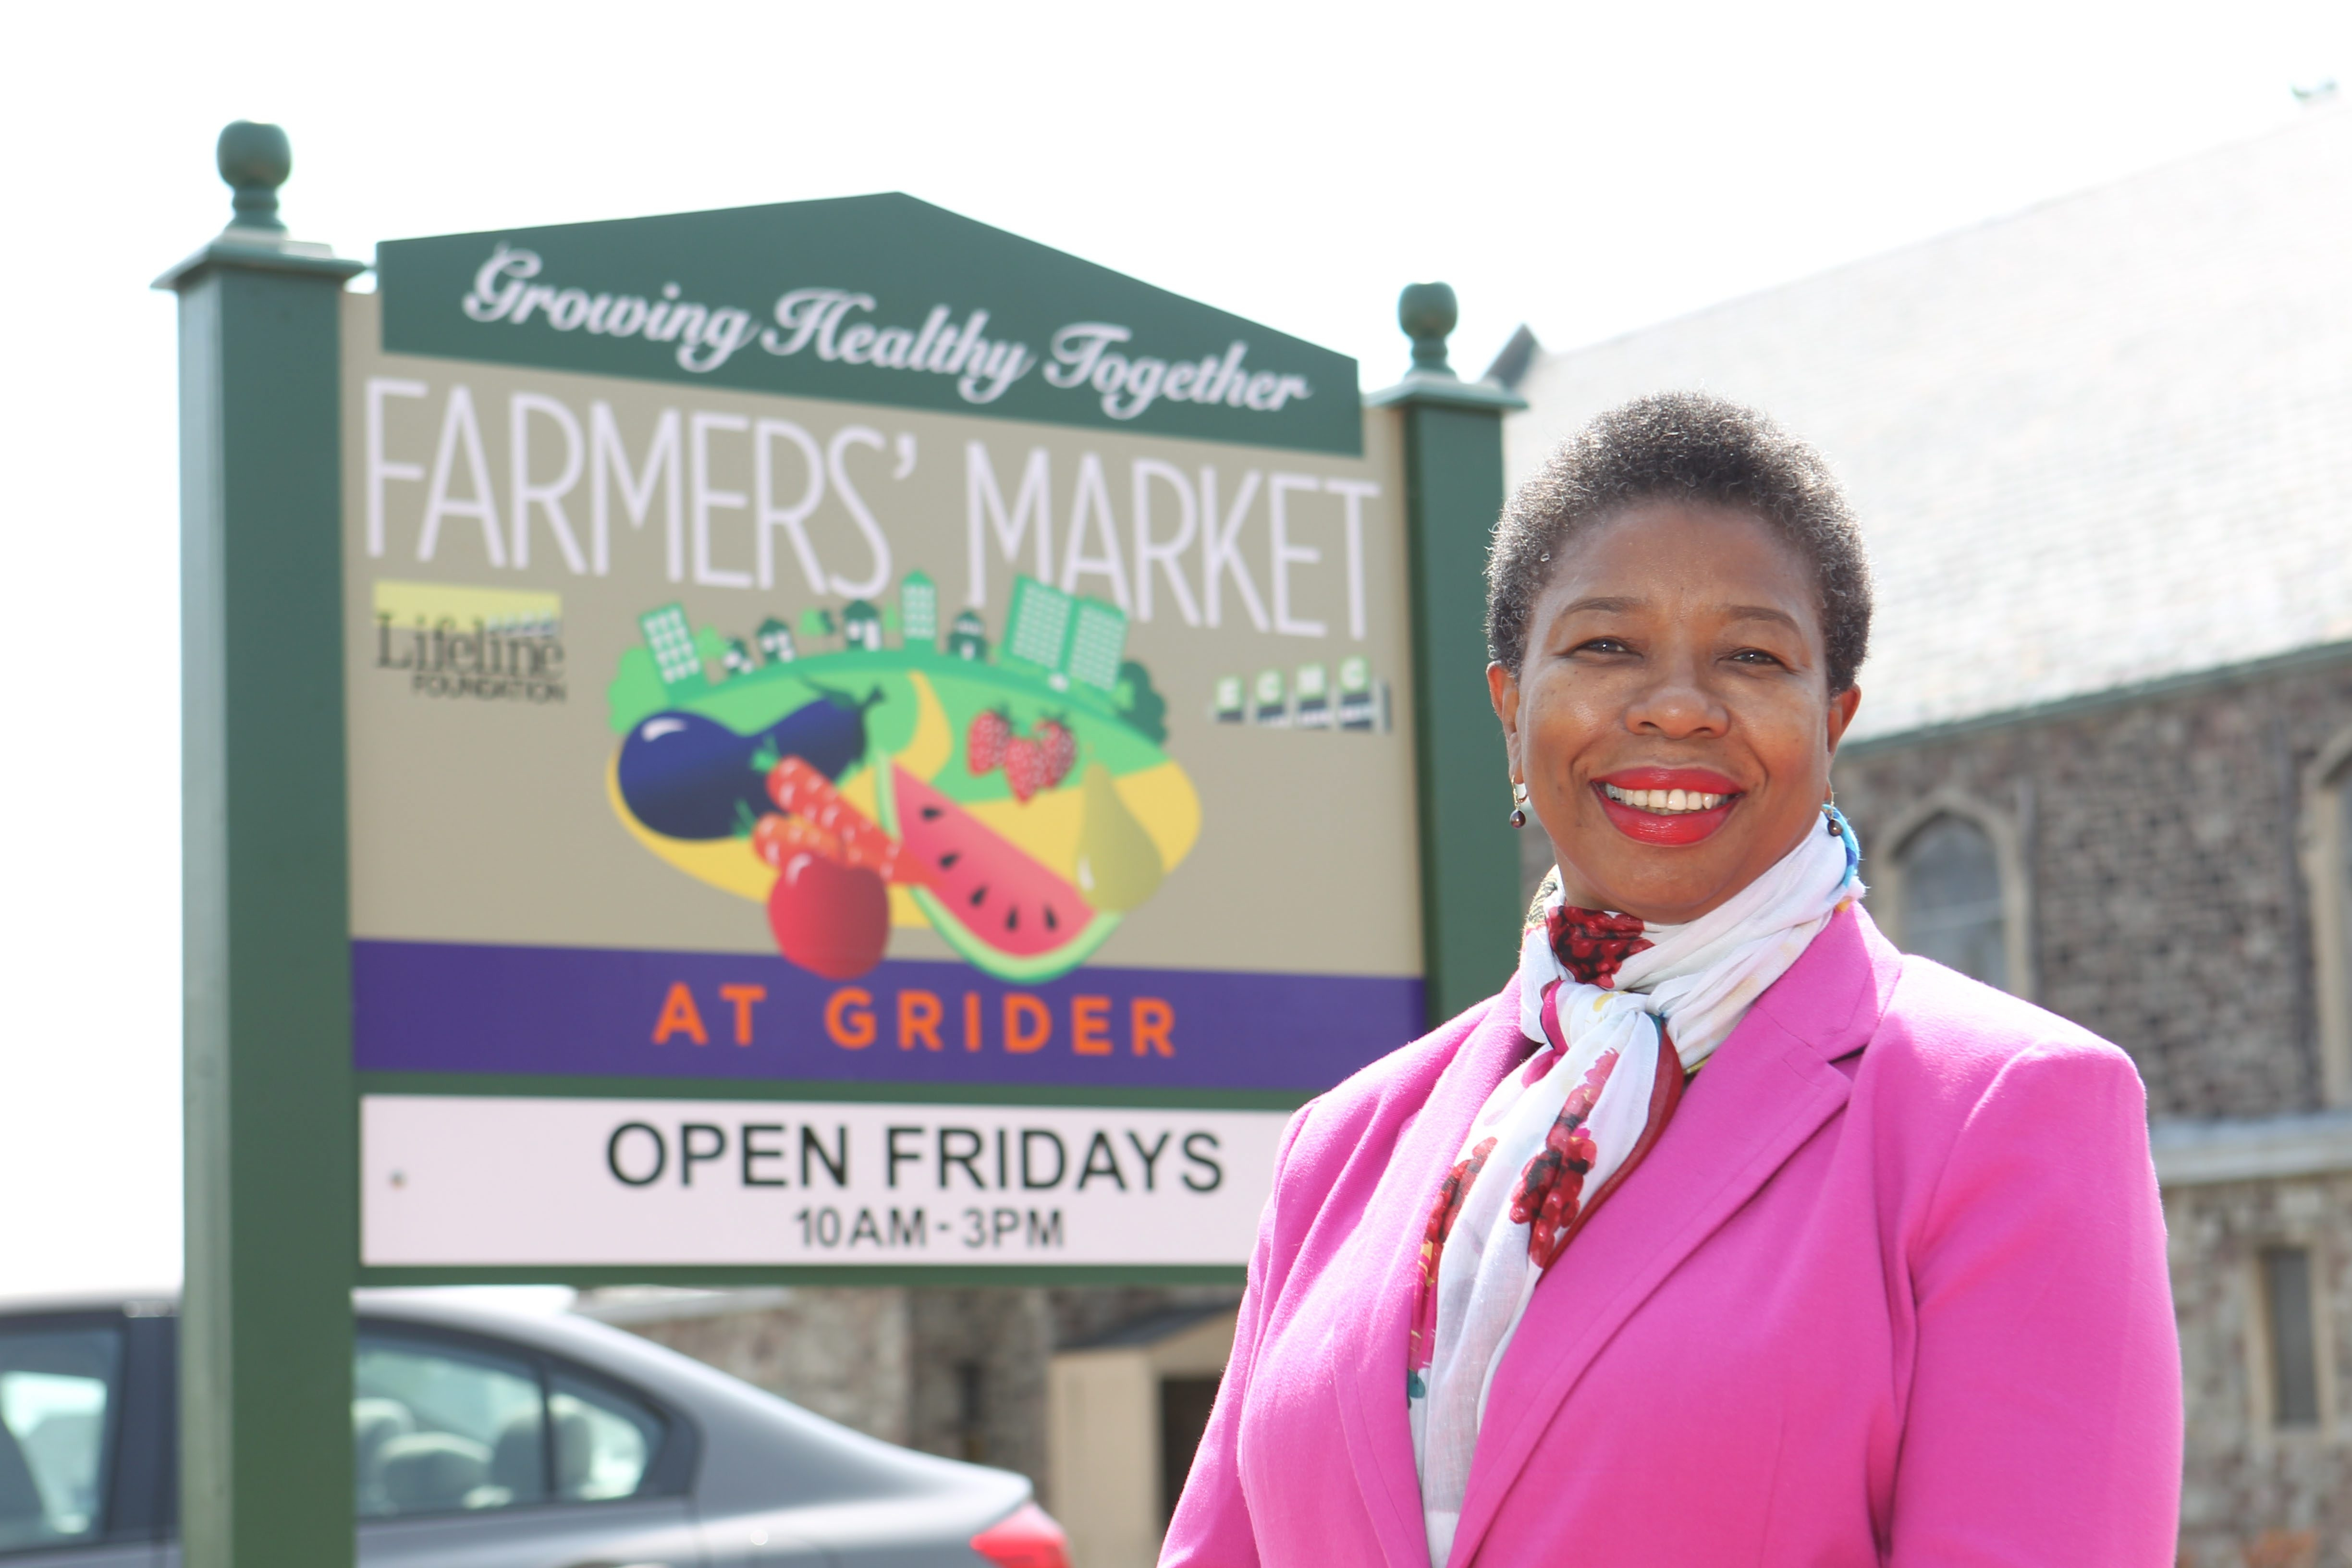 """""""Our market is local, seasonal and fresh,"""" said ECMC's Rita Hubbard-Robinson, who oversees the Farmers' Market at Grider."""